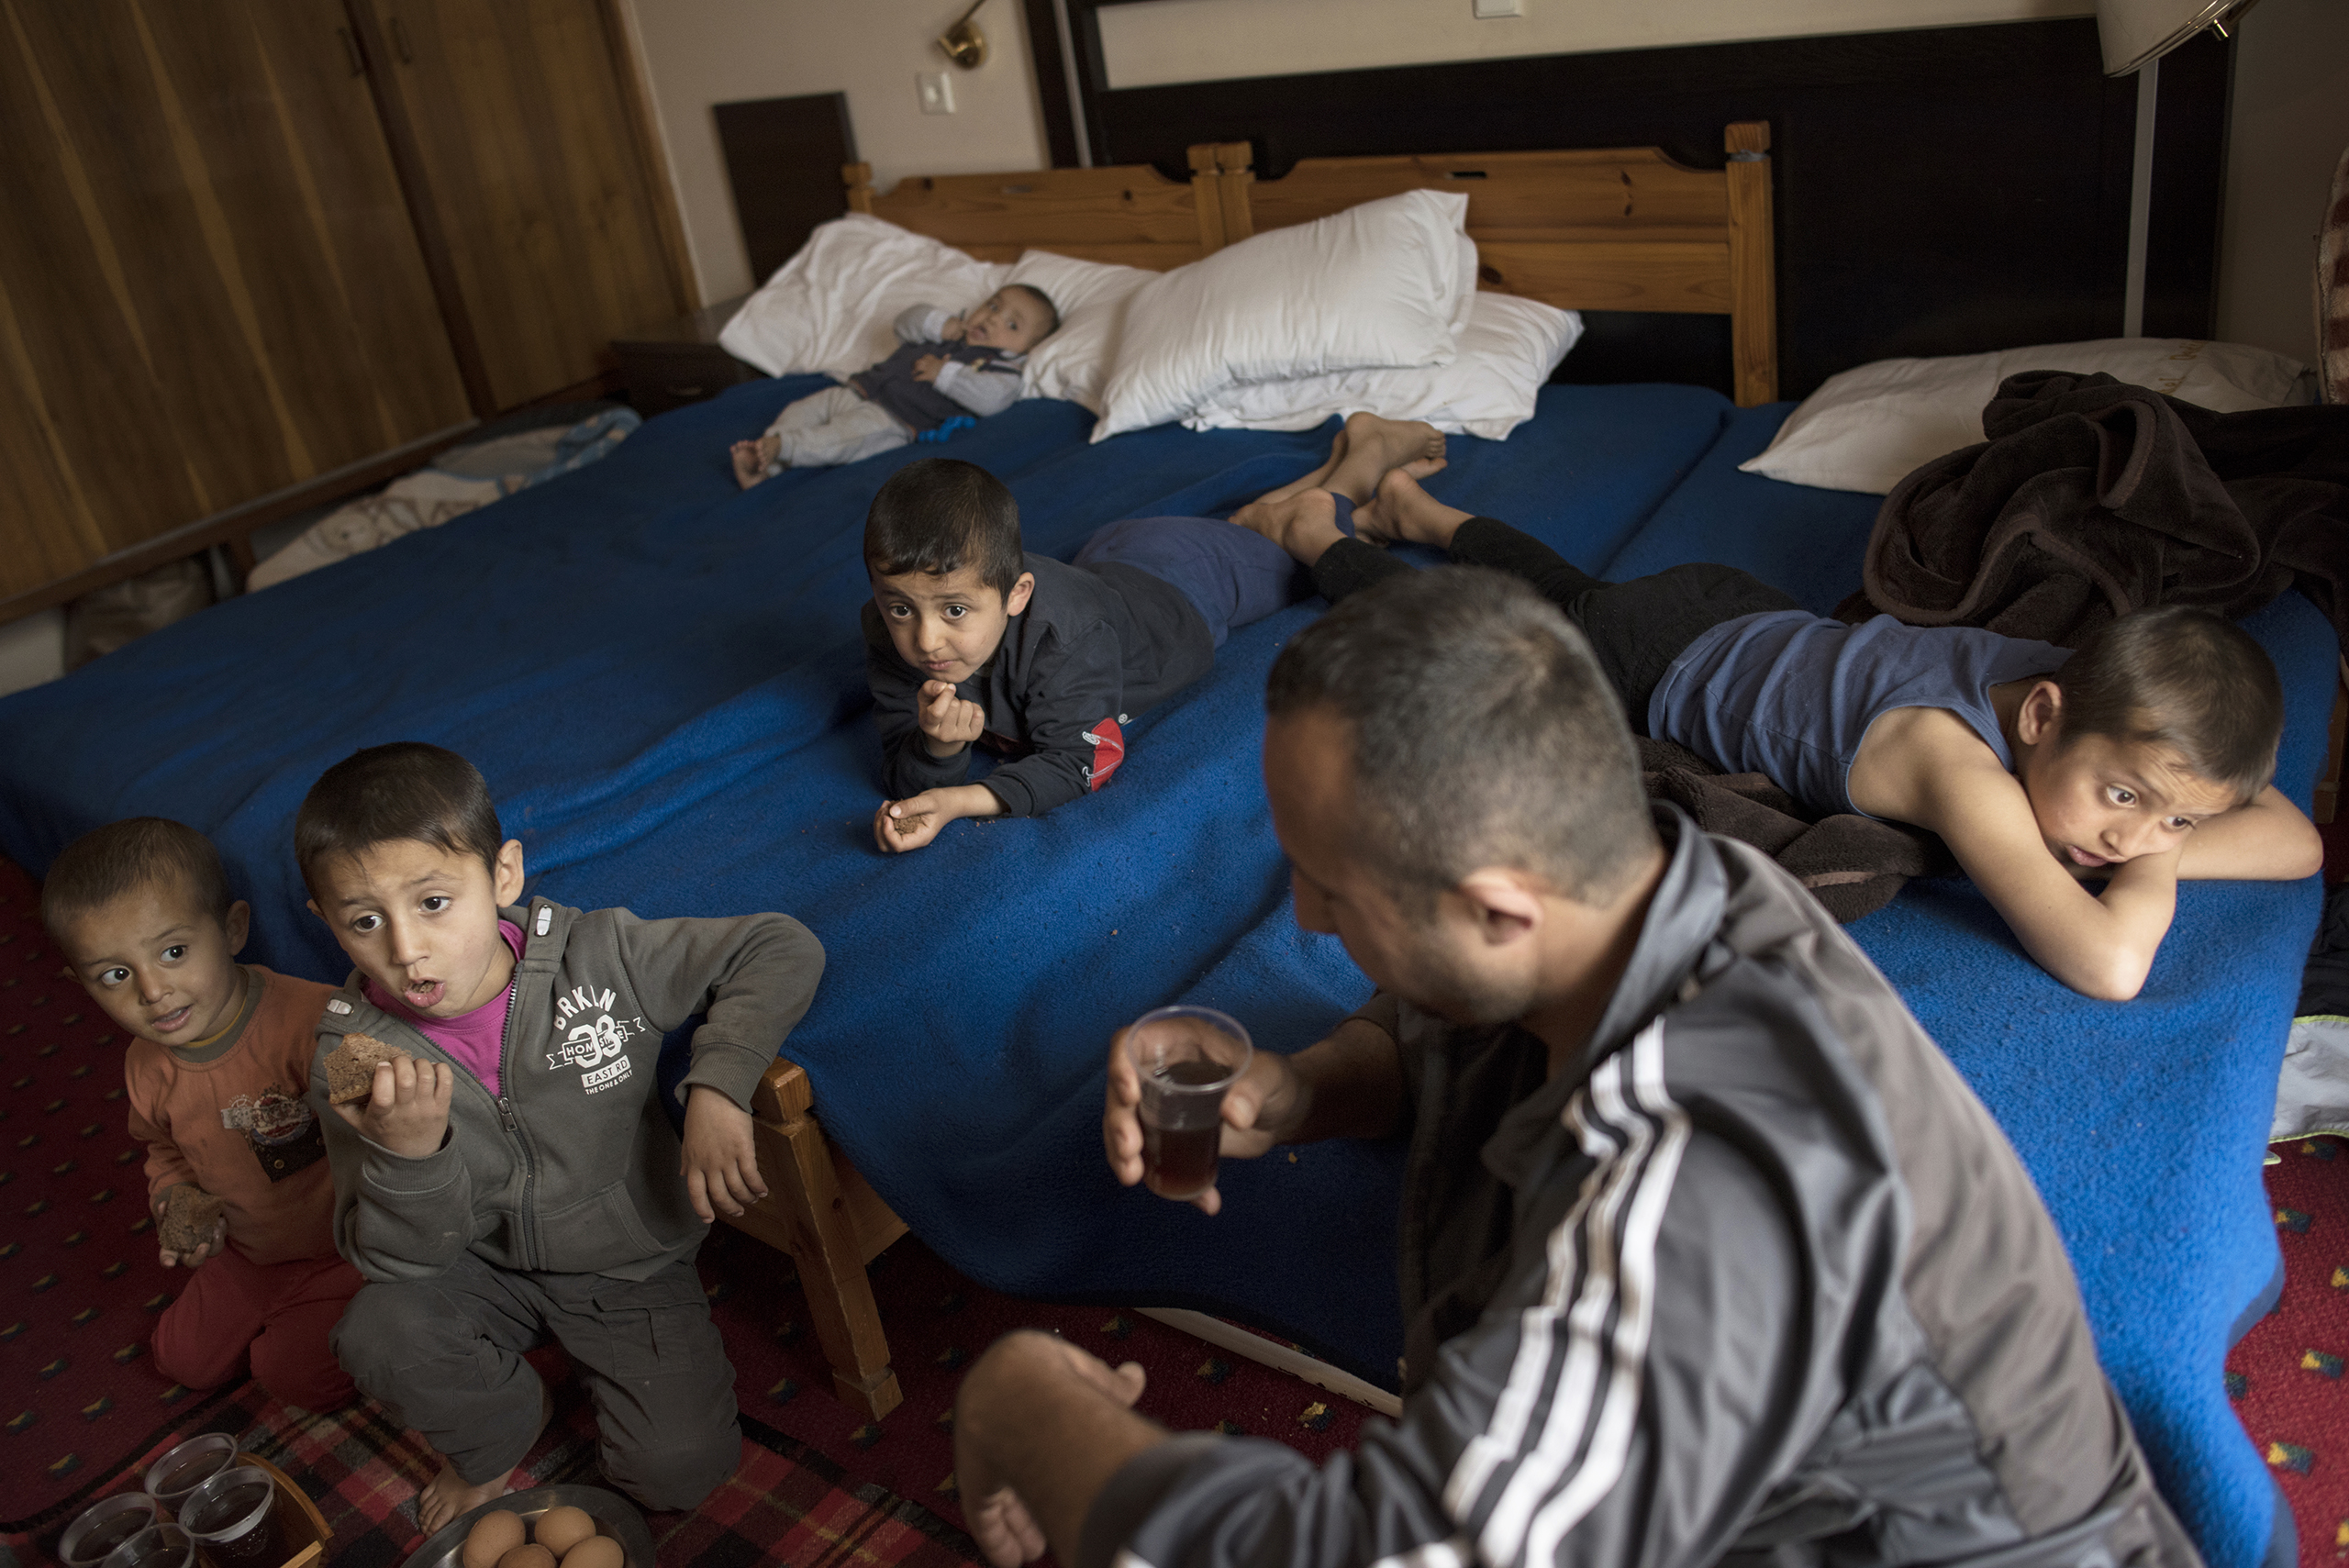 Minhel drinks tea while his children watch television in a hotel in Kastoria, Greece, near the Albanian border, March 27, 2017.